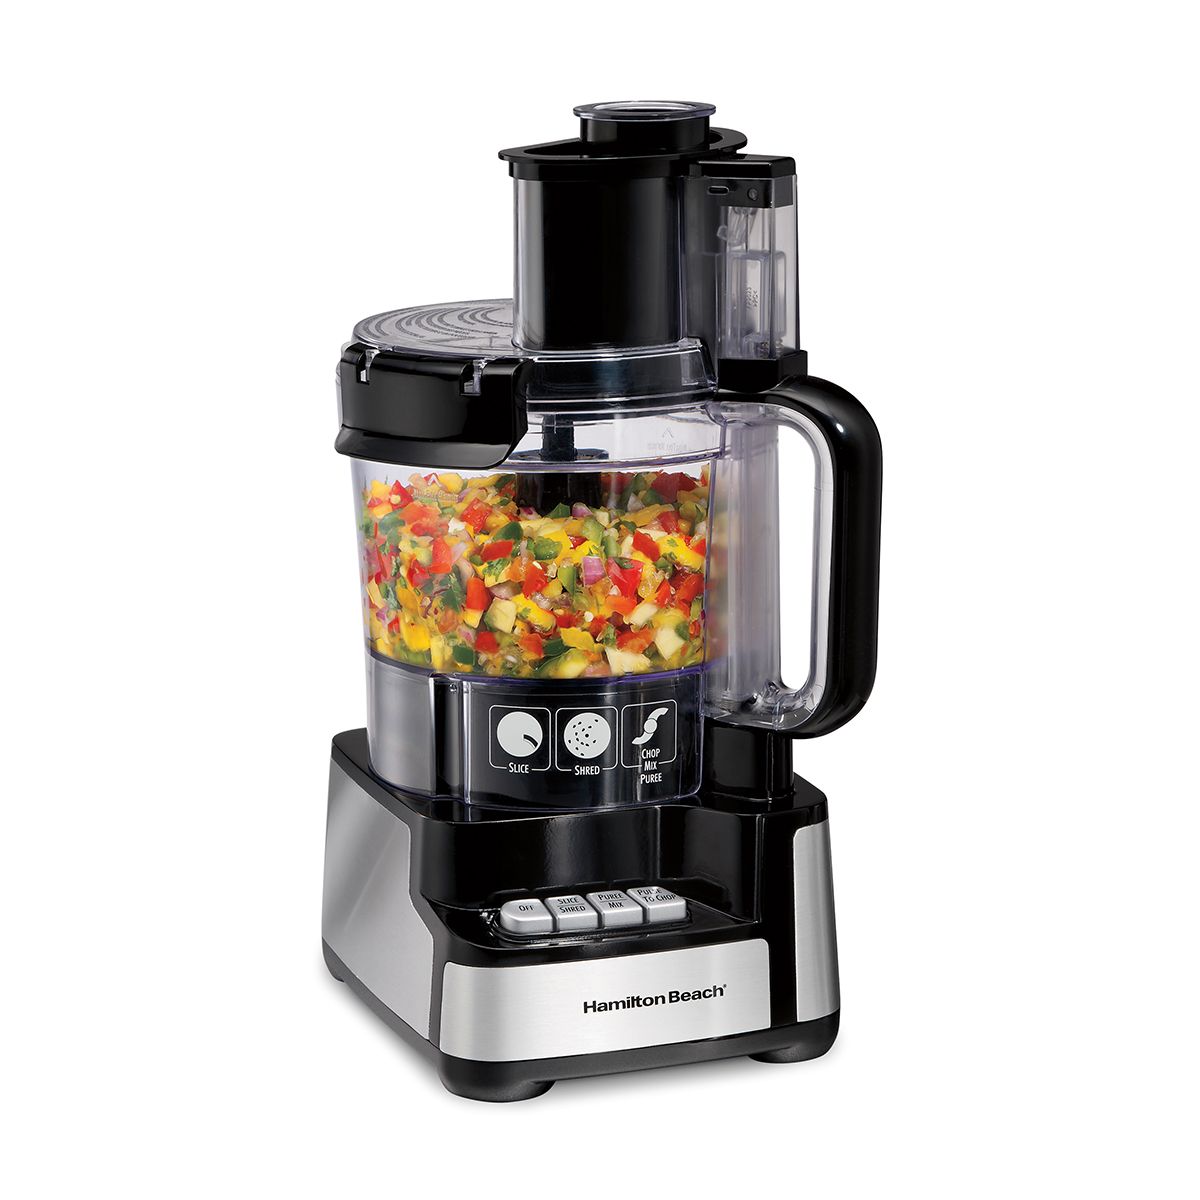 12 Cup Stack & Snap™ Food Processor, Black and Stainless (70728)